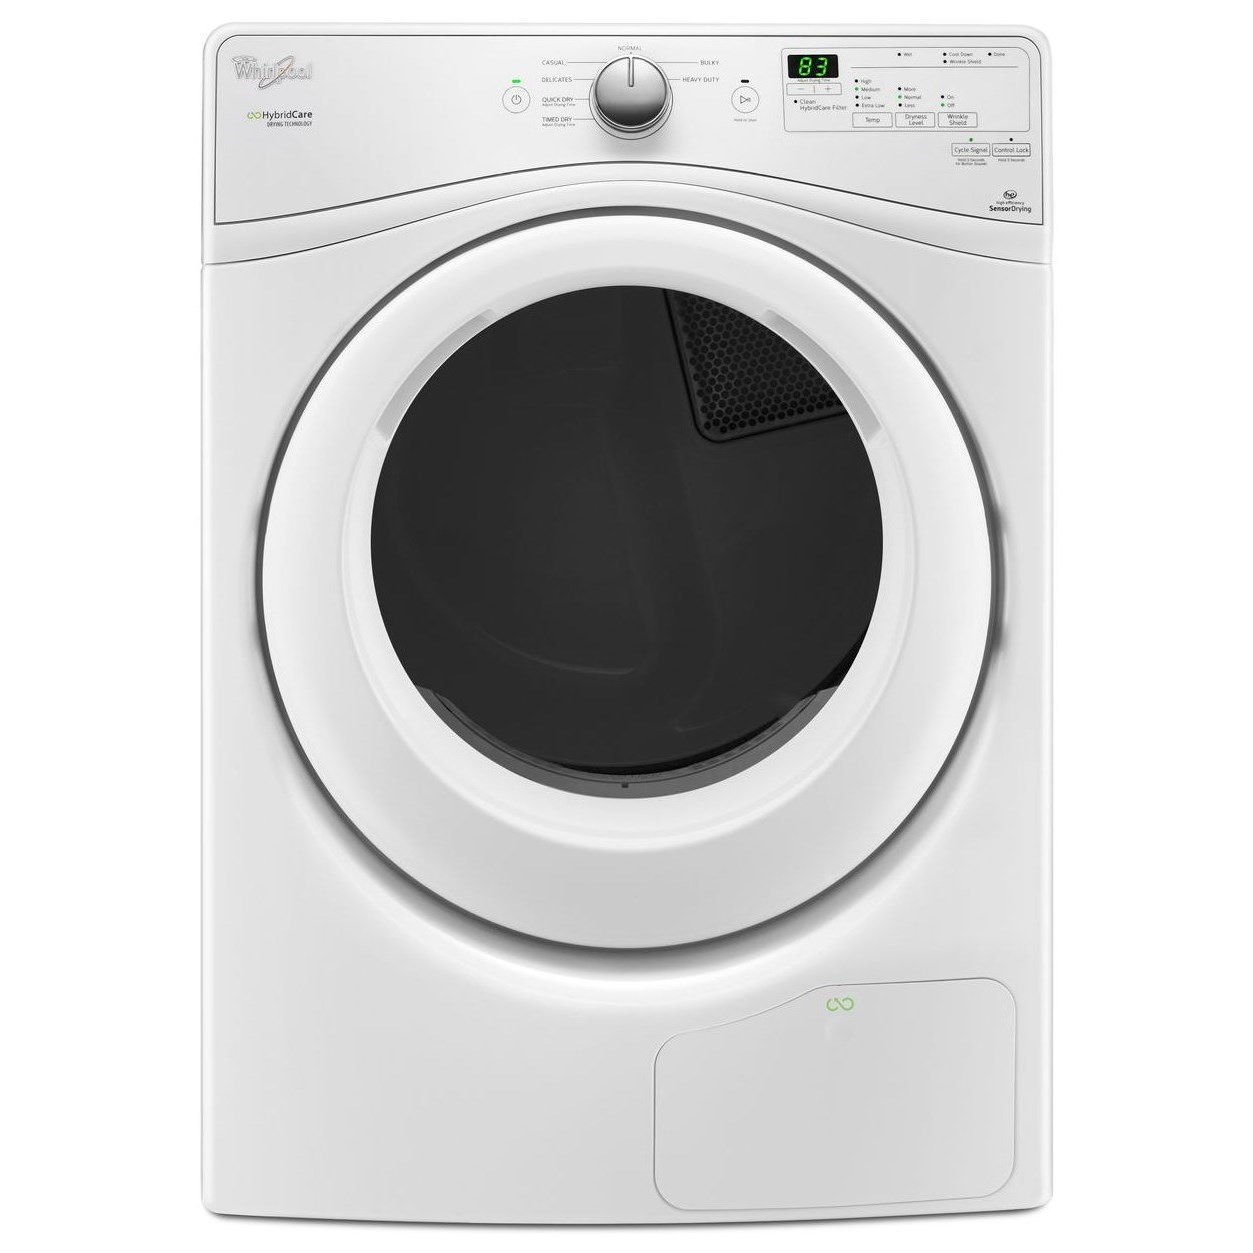 Whirlpool Electric Front Load Dryers 7.4 cu. ft. HybridCare™ Heat Pump Dryer - Item Number: WED7990FW